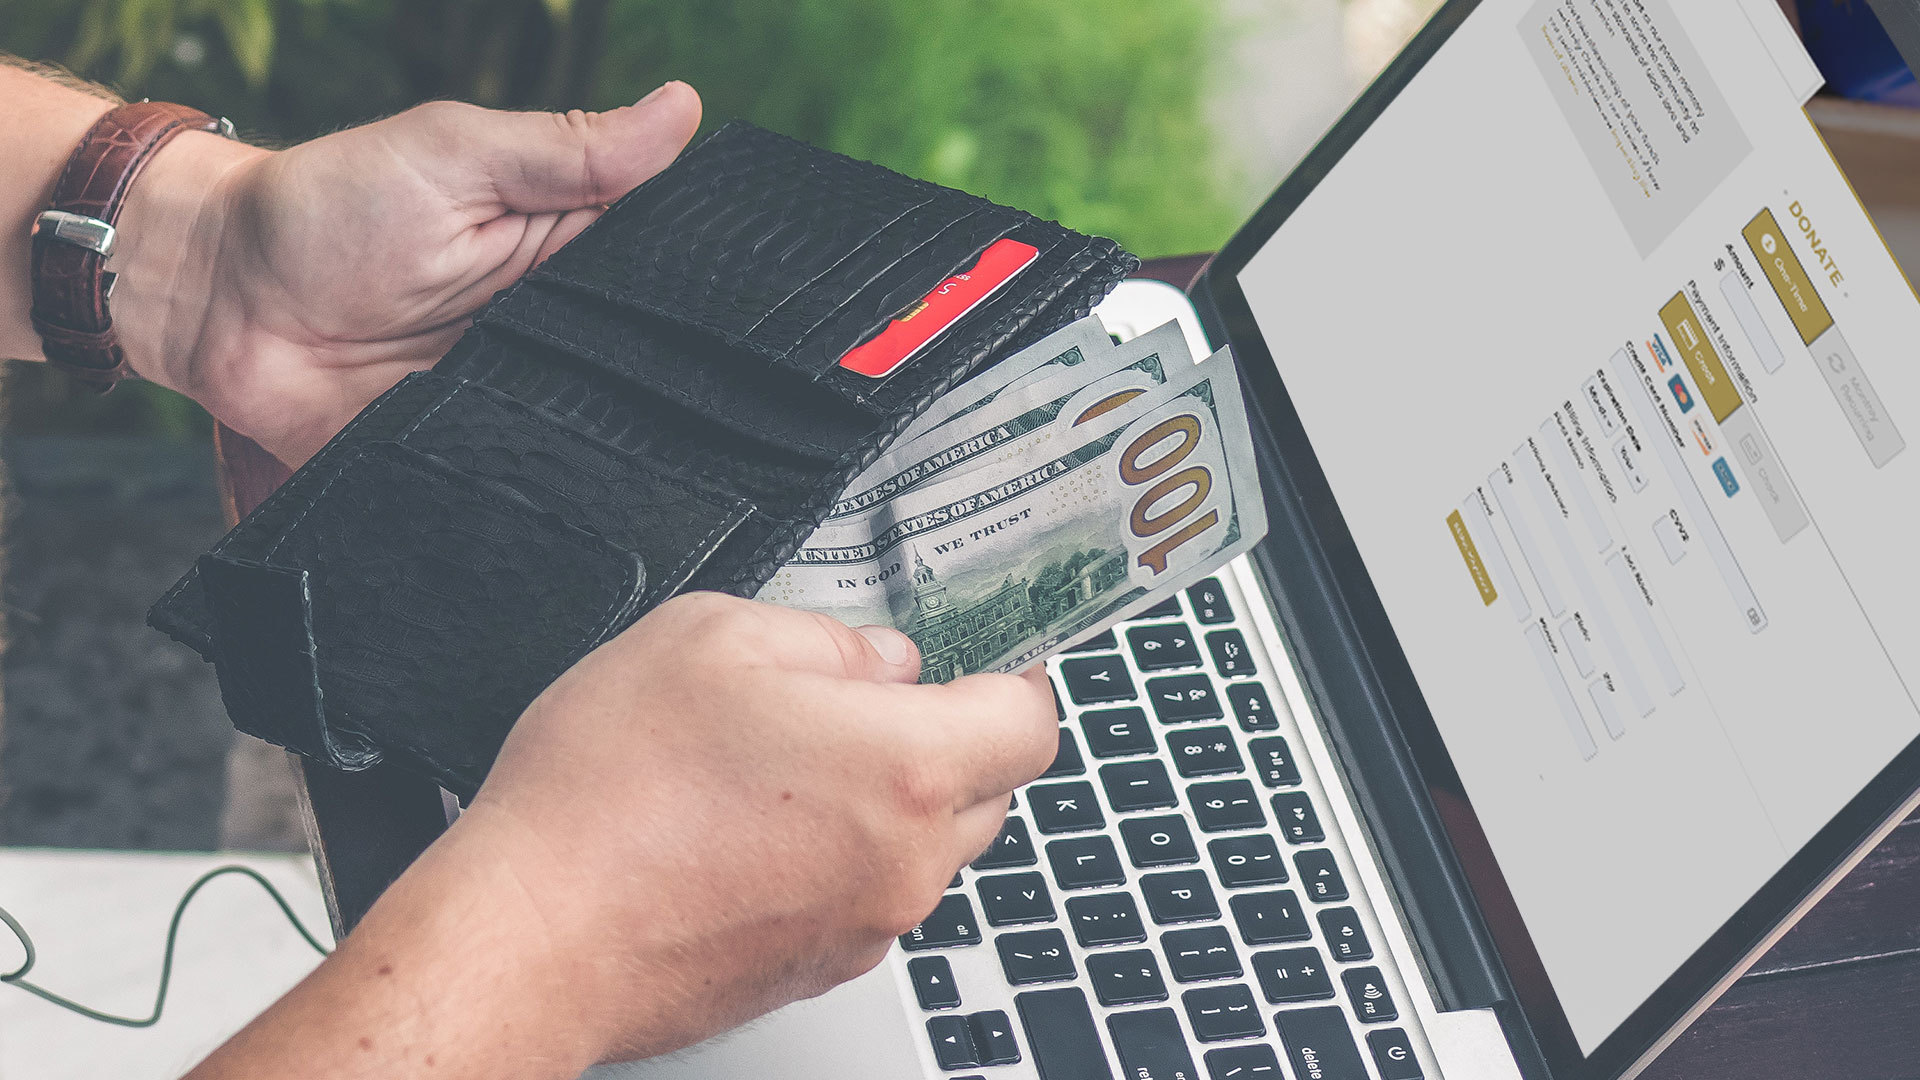 How to accept online donations & payments on your website